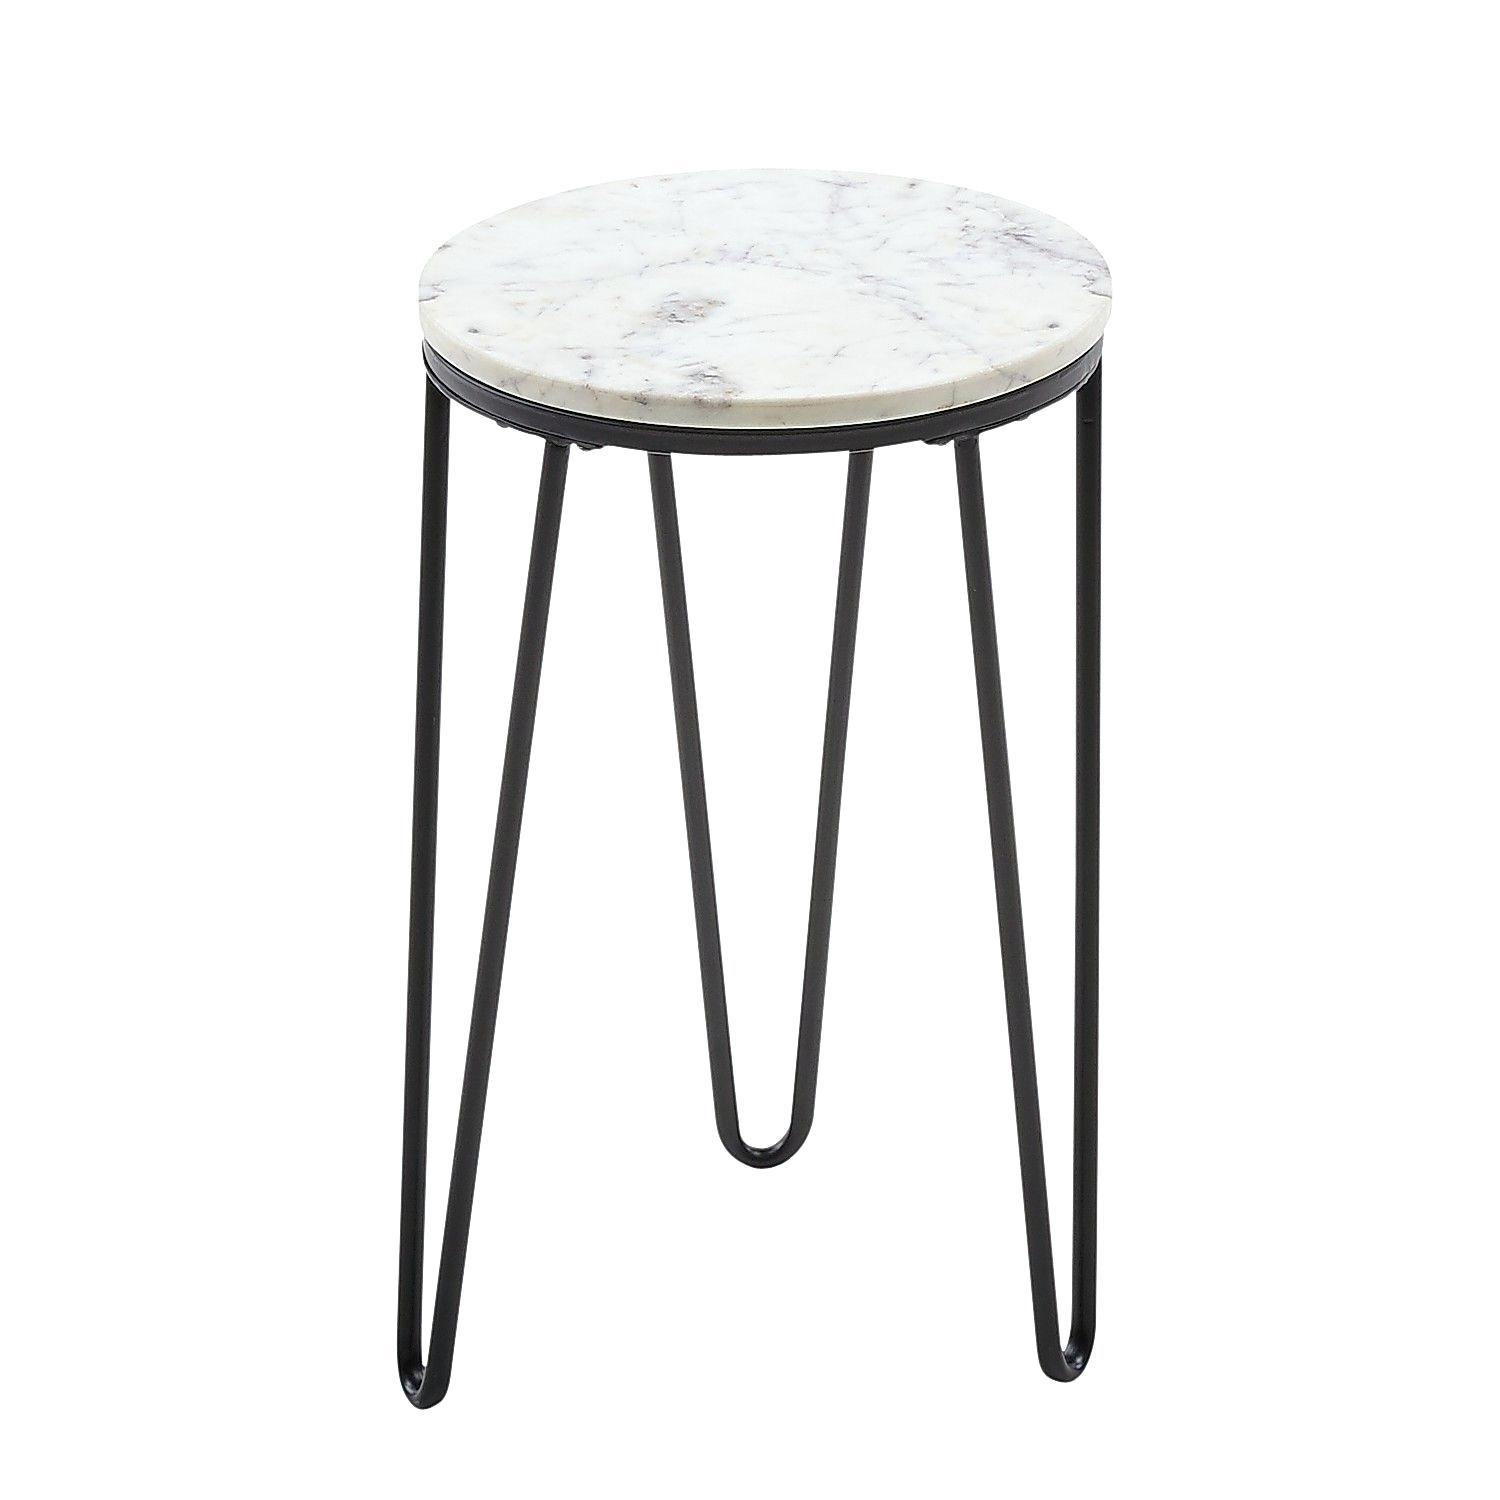 save this item pier accent tables mosaic table lavorochogan info kenzie contemporary bedroom lamps modern kitchen clocks ethan allen painted furniture nautical sconces indoor